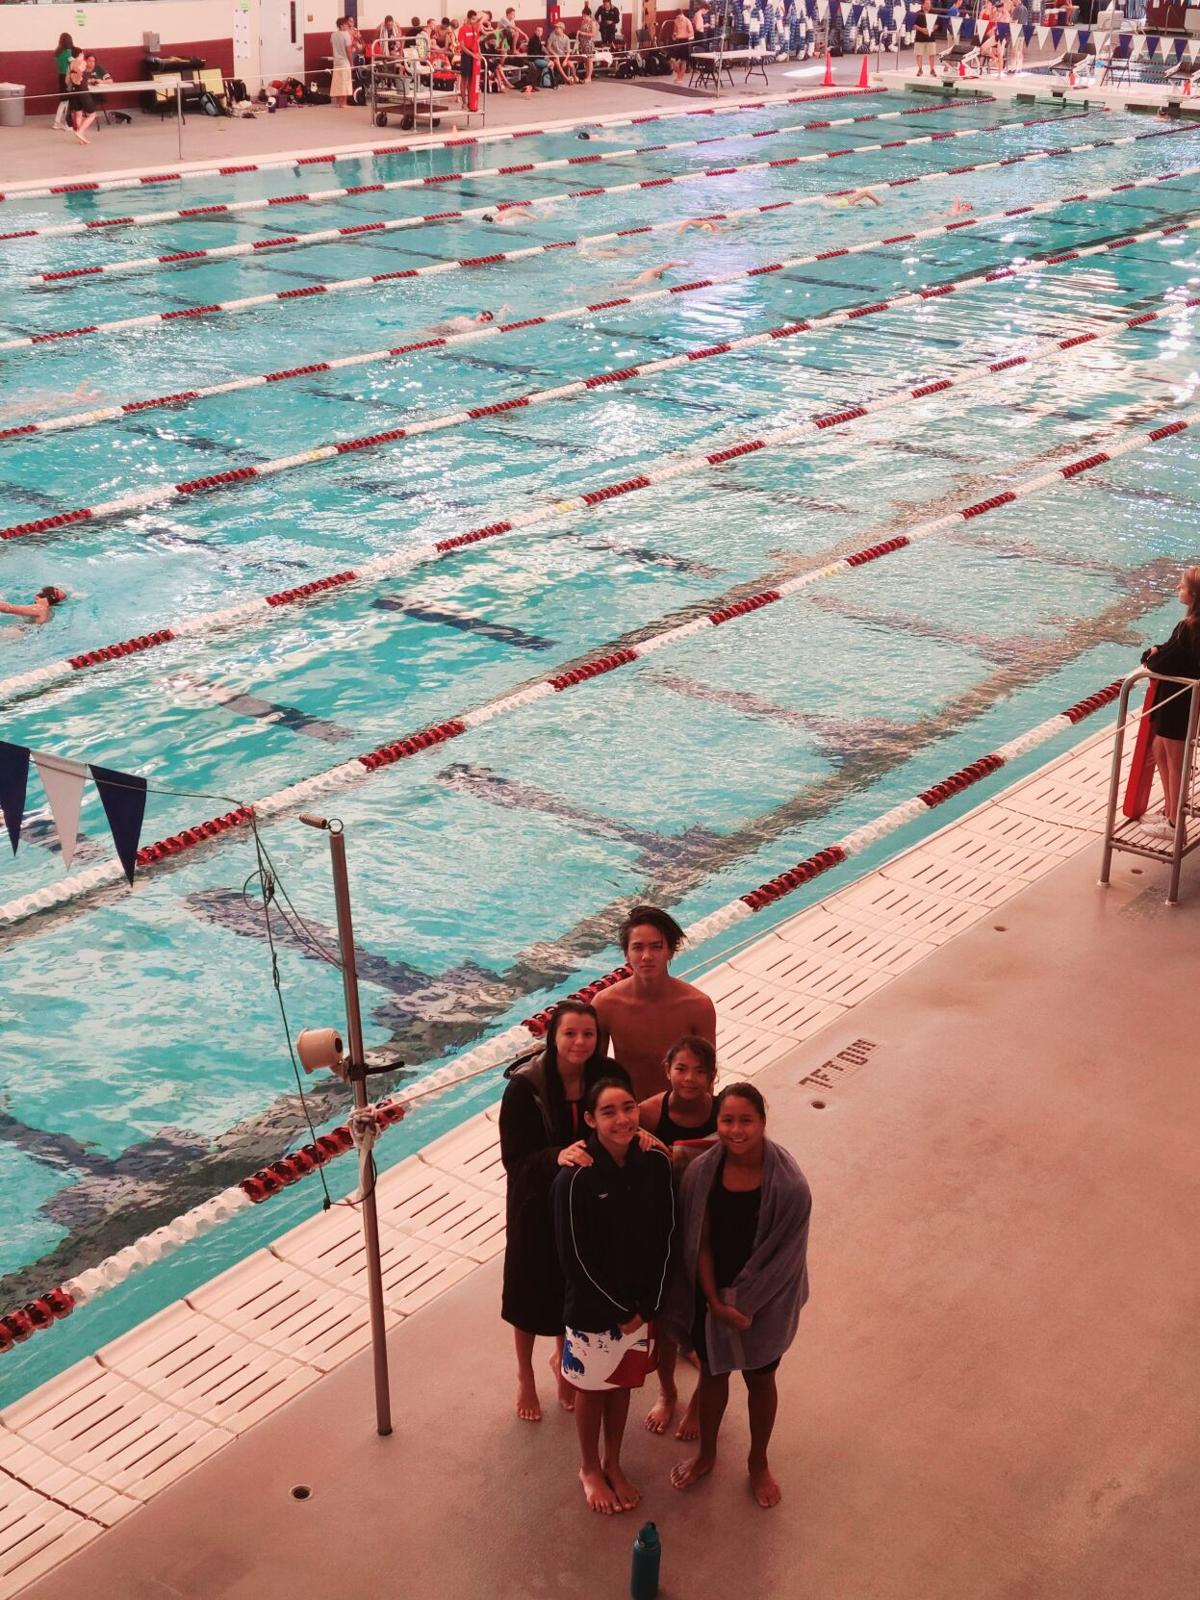 Manhoben swimmers advance to finals in long course championships